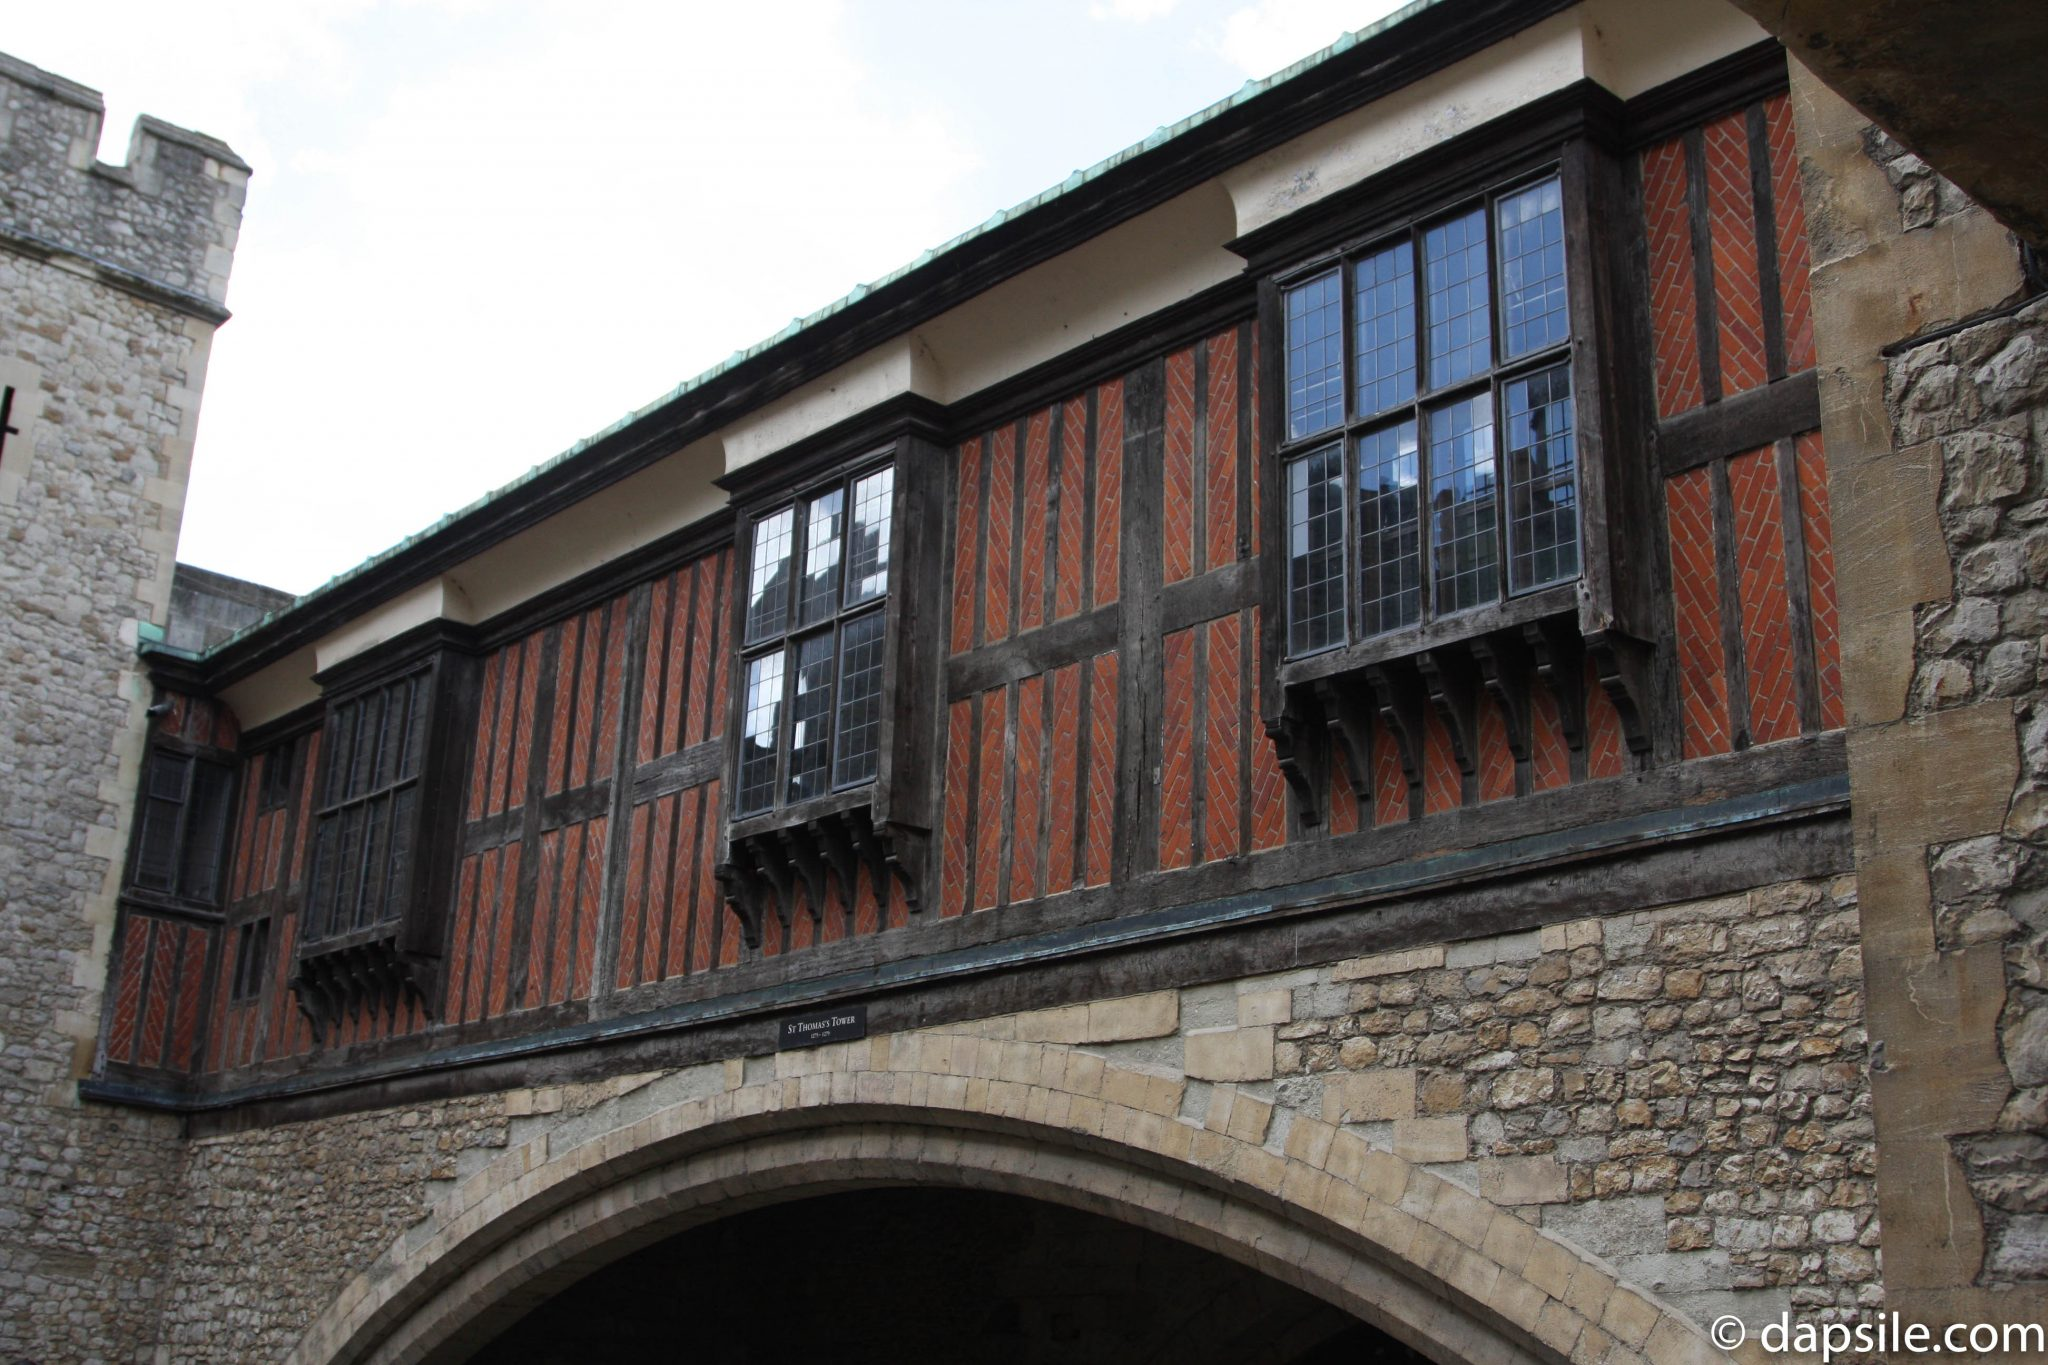 Tudor Architecture at the Tower of London